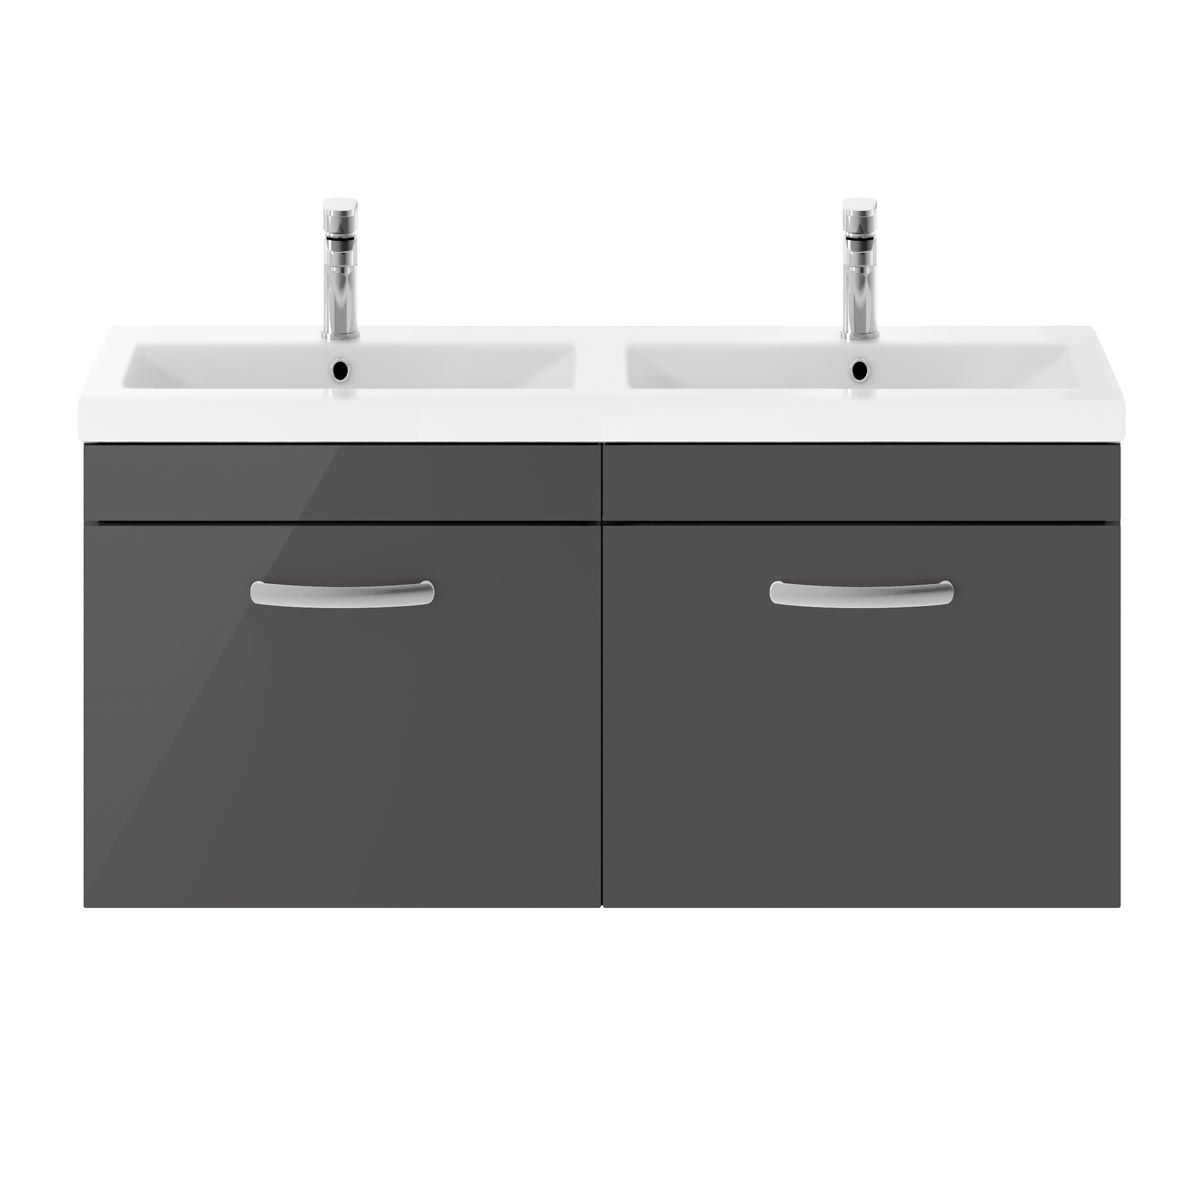 Nuie Athena Gloss Grey 2 Drawer Wall Hung Vanity Unit with Ceramic Double Basin 1200mm